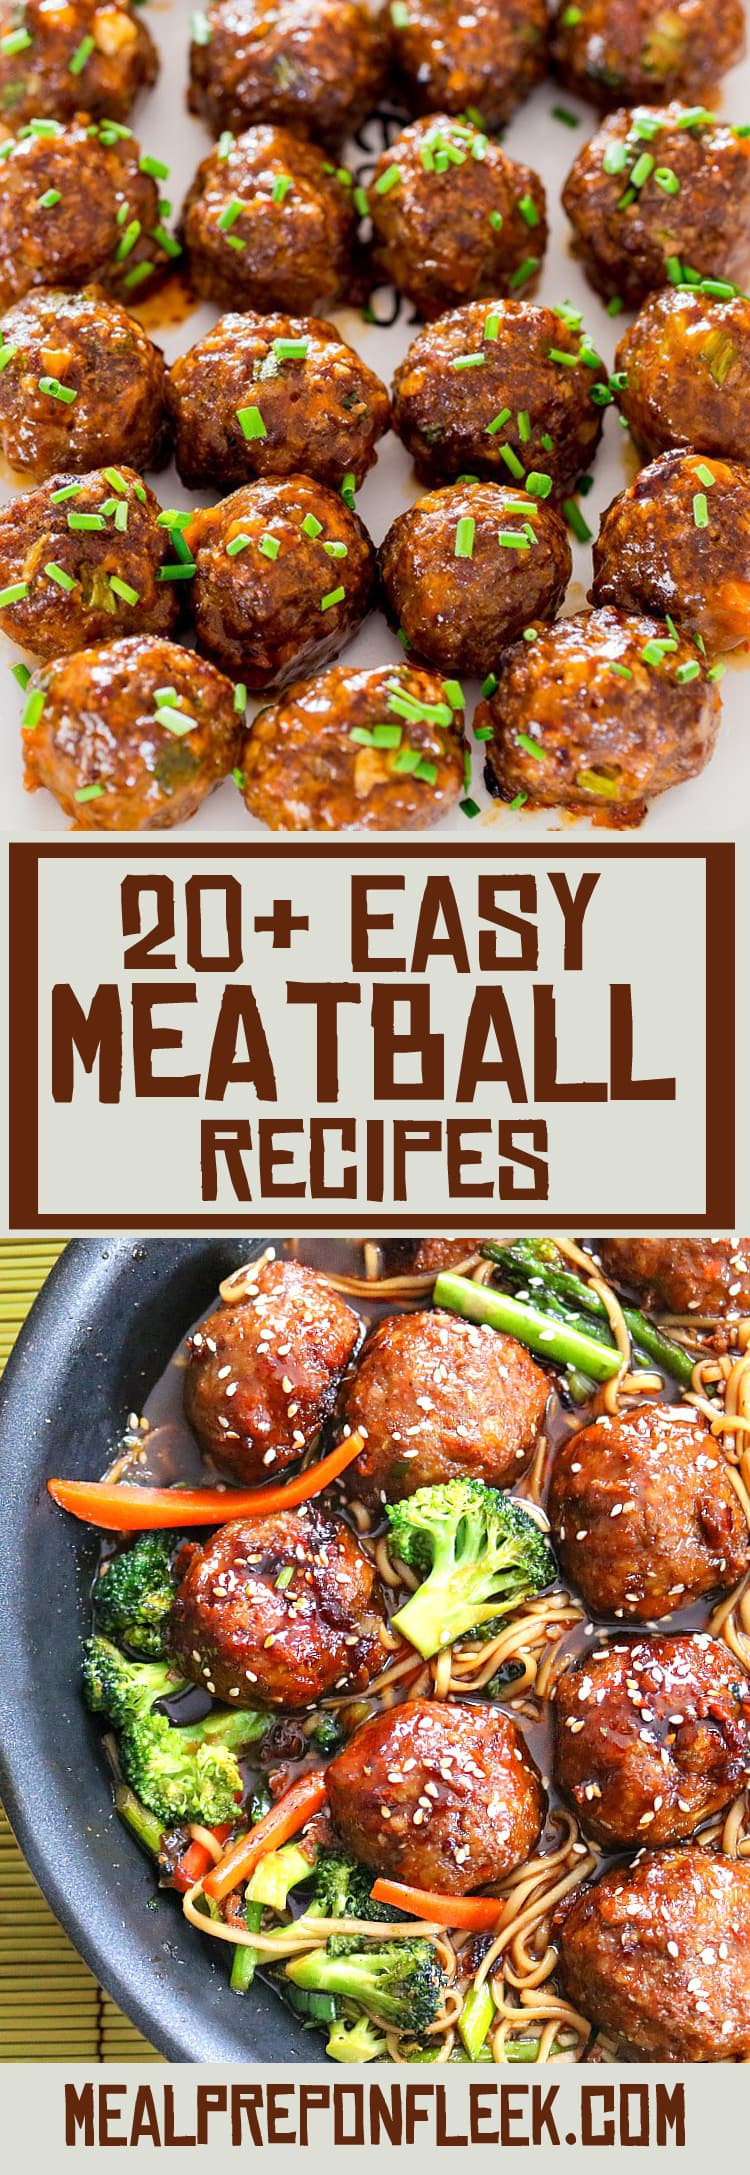 20 Easy Meal Prep Recipes